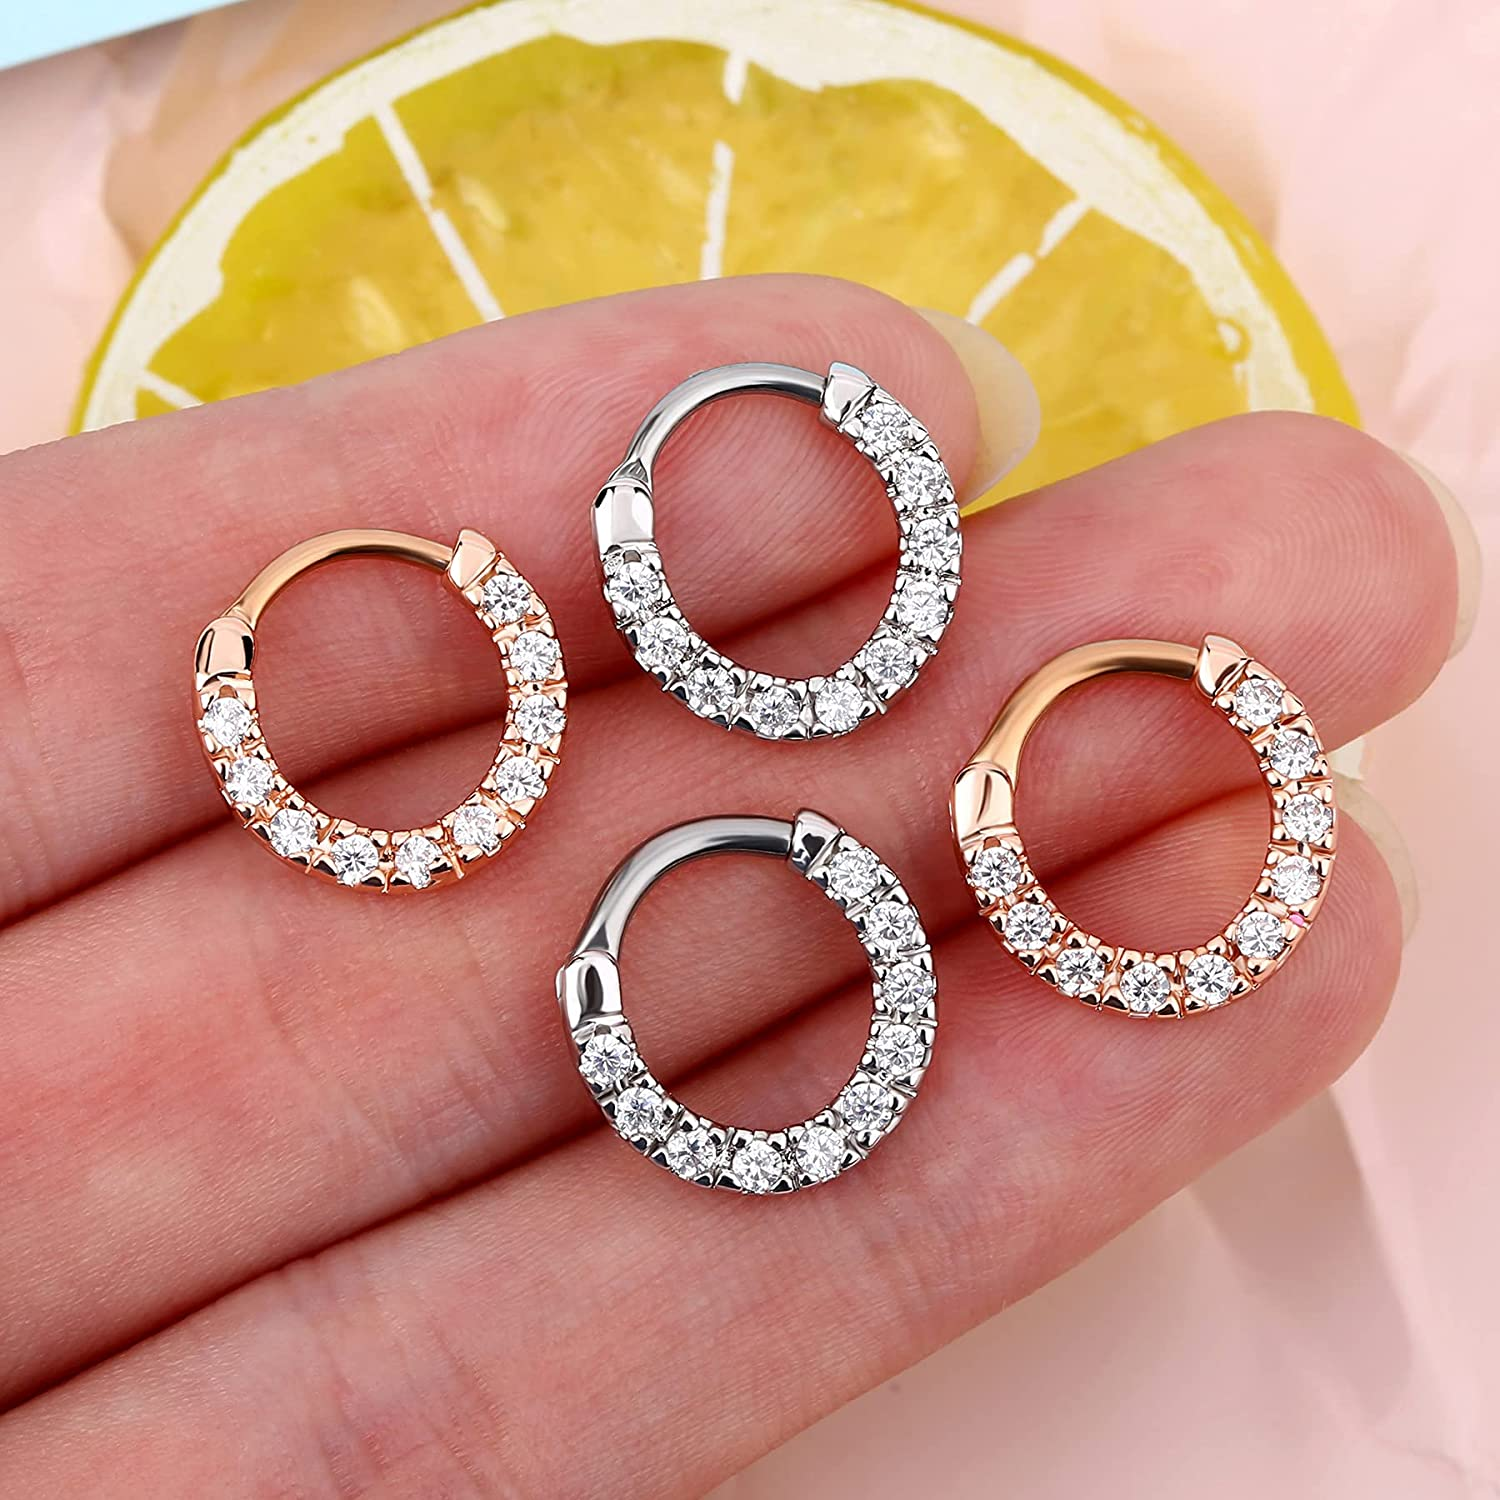 Melighting Septum Jewelry 16G Nose Ring for Women 316L Surgical Stainless Steel Clear CZ Septum Clicker Helix Earrings Cartilage Tragus Rook Earring Piercing Jewelry for Men